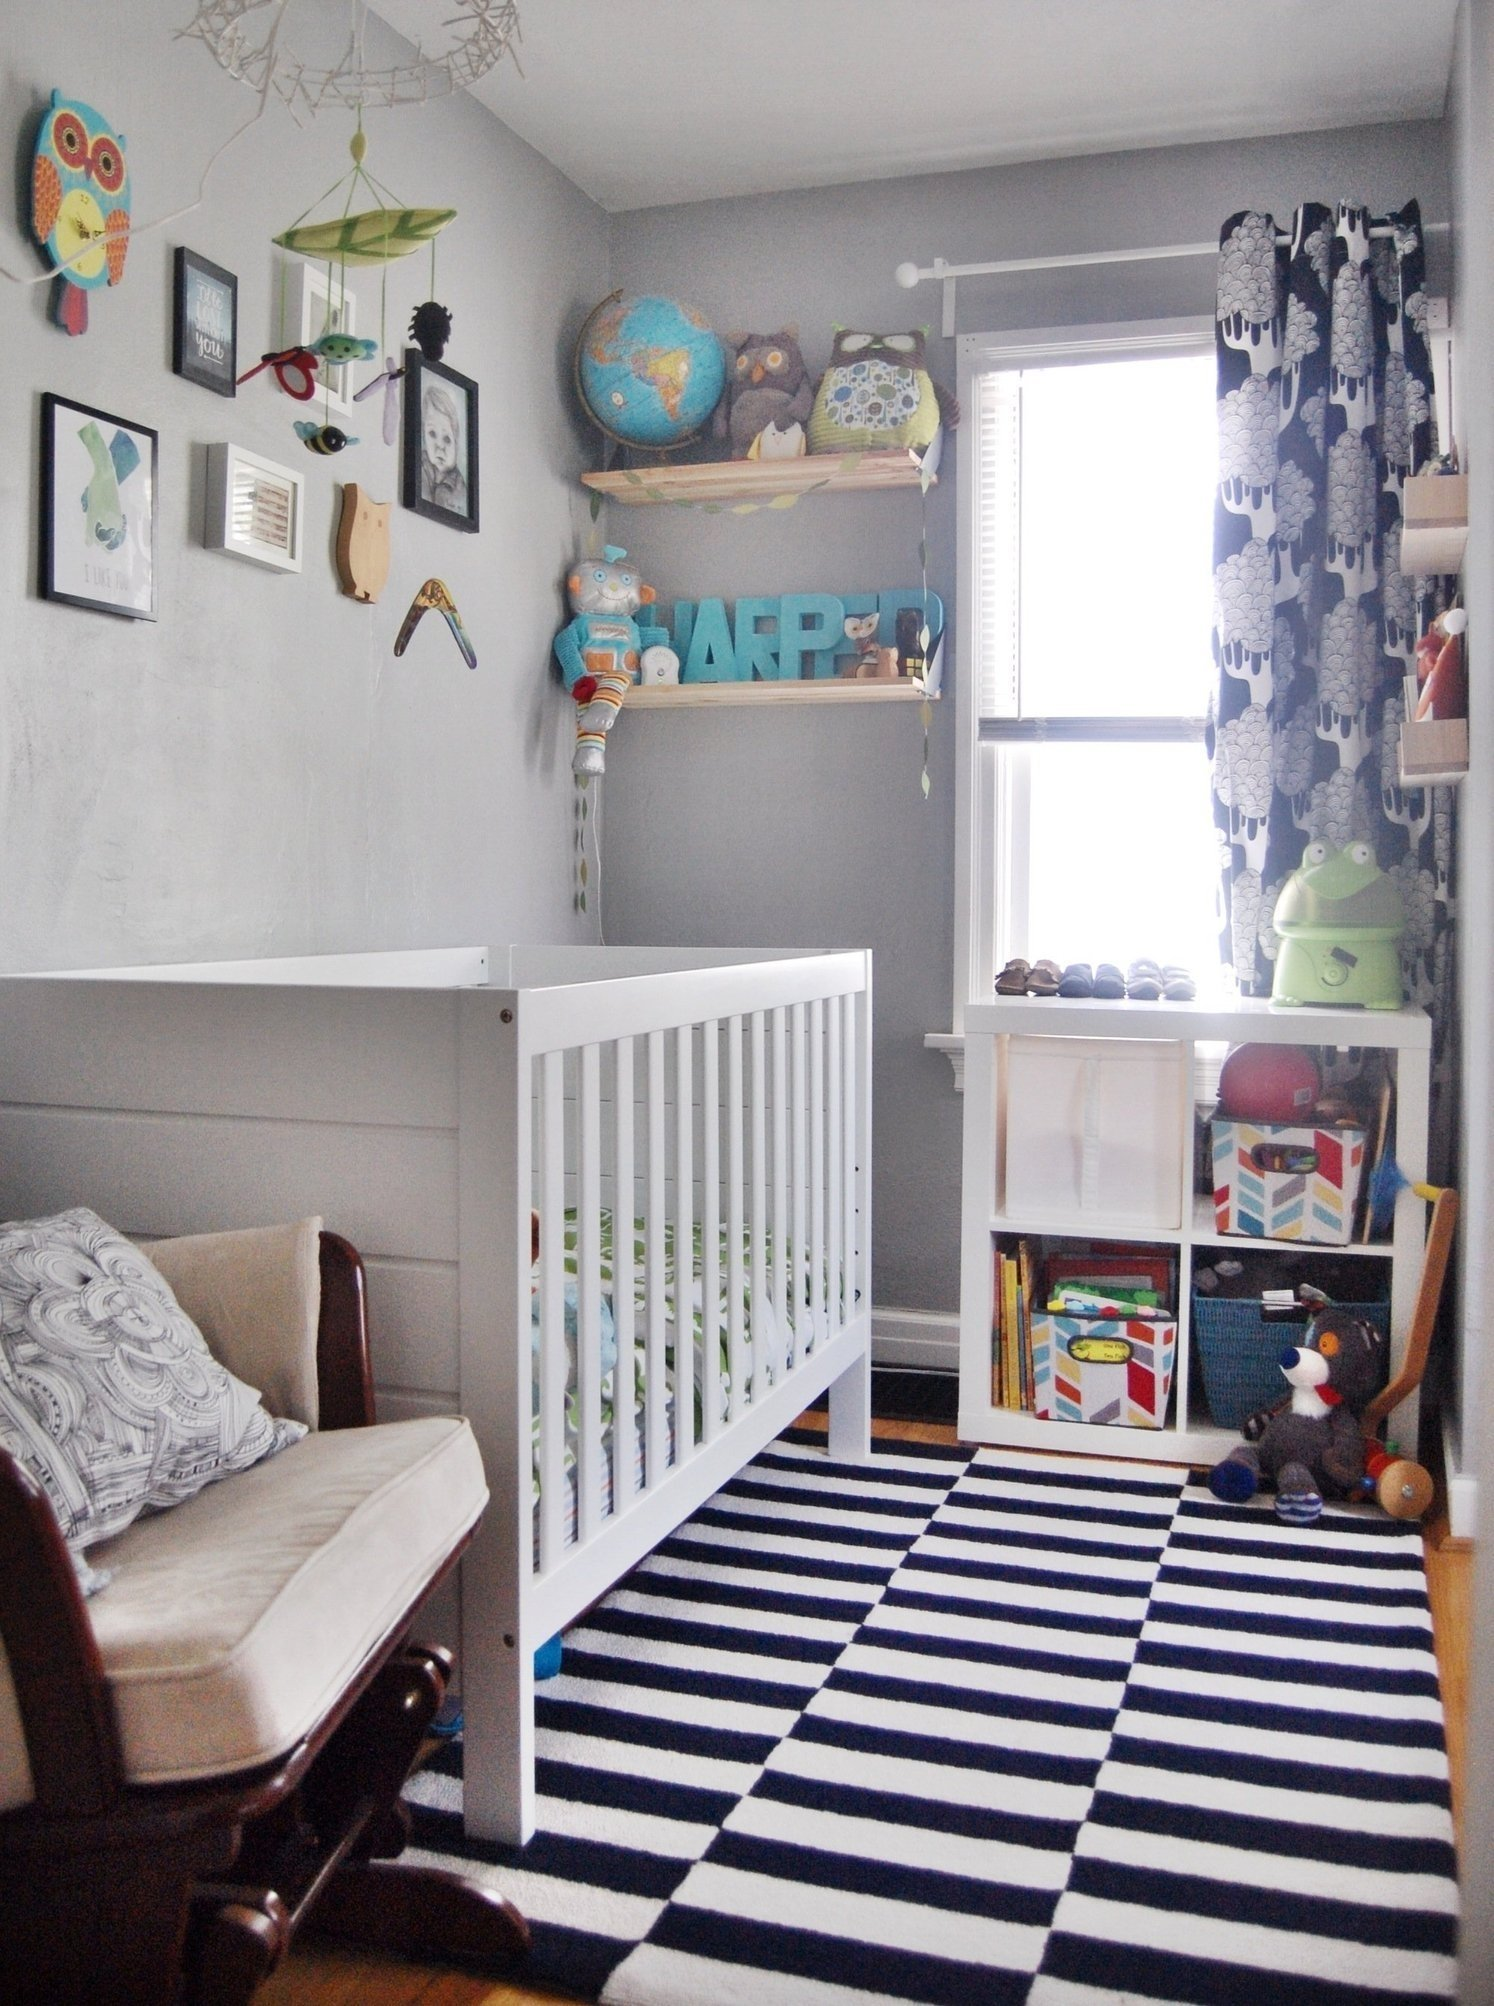 10 Gorgeous Nursery Ideas For Small Rooms images about small baby rooms on pinterest nurseries and idolza 2020